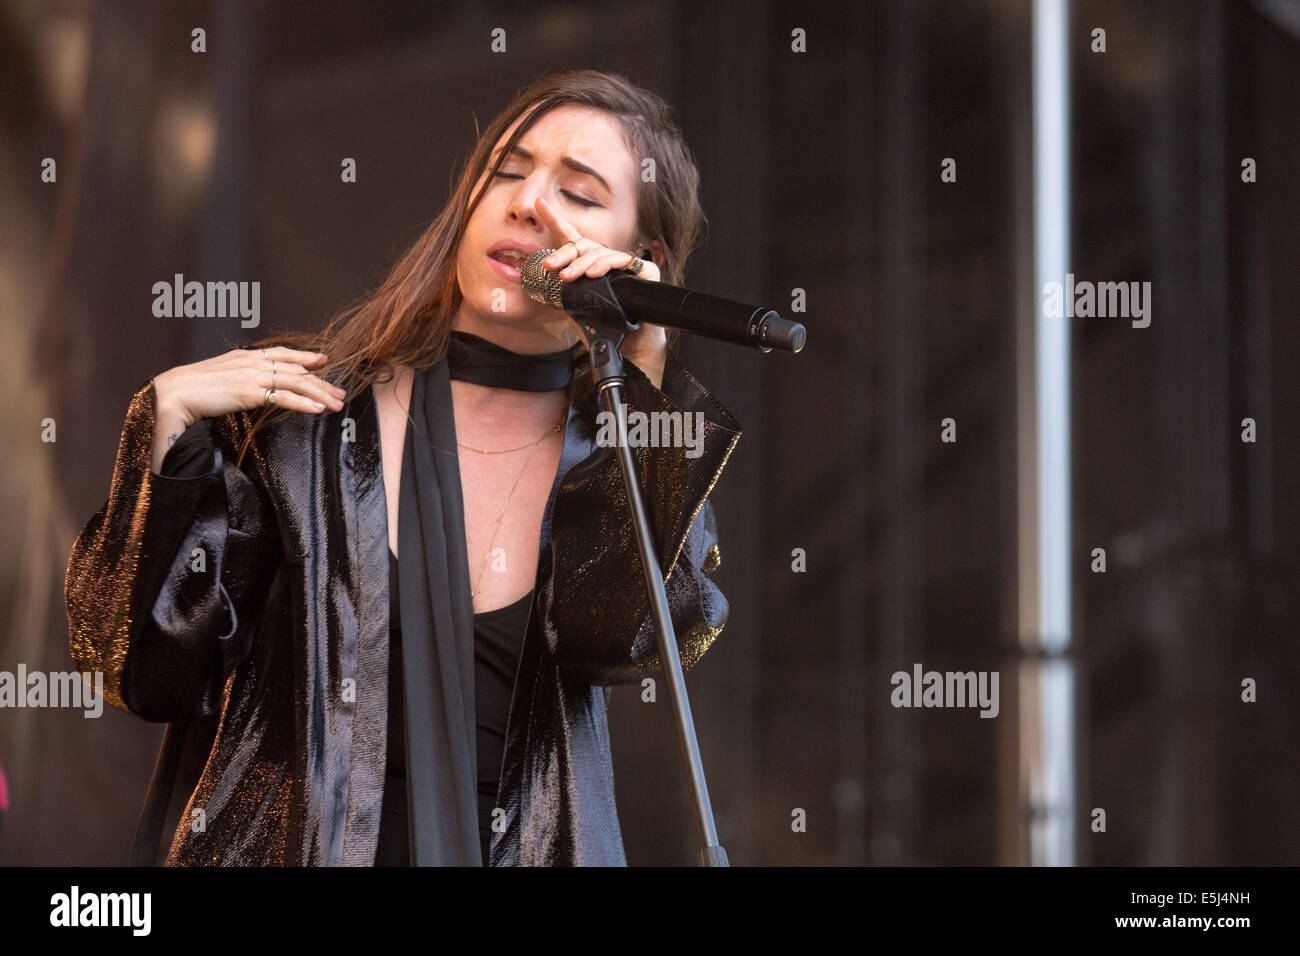 Chicago, Illinois, USA. 5th Jan, 2012. Vocalist LYKKE LI performs live at the 2014 Lollapalooza Music Festival in - Stock Image